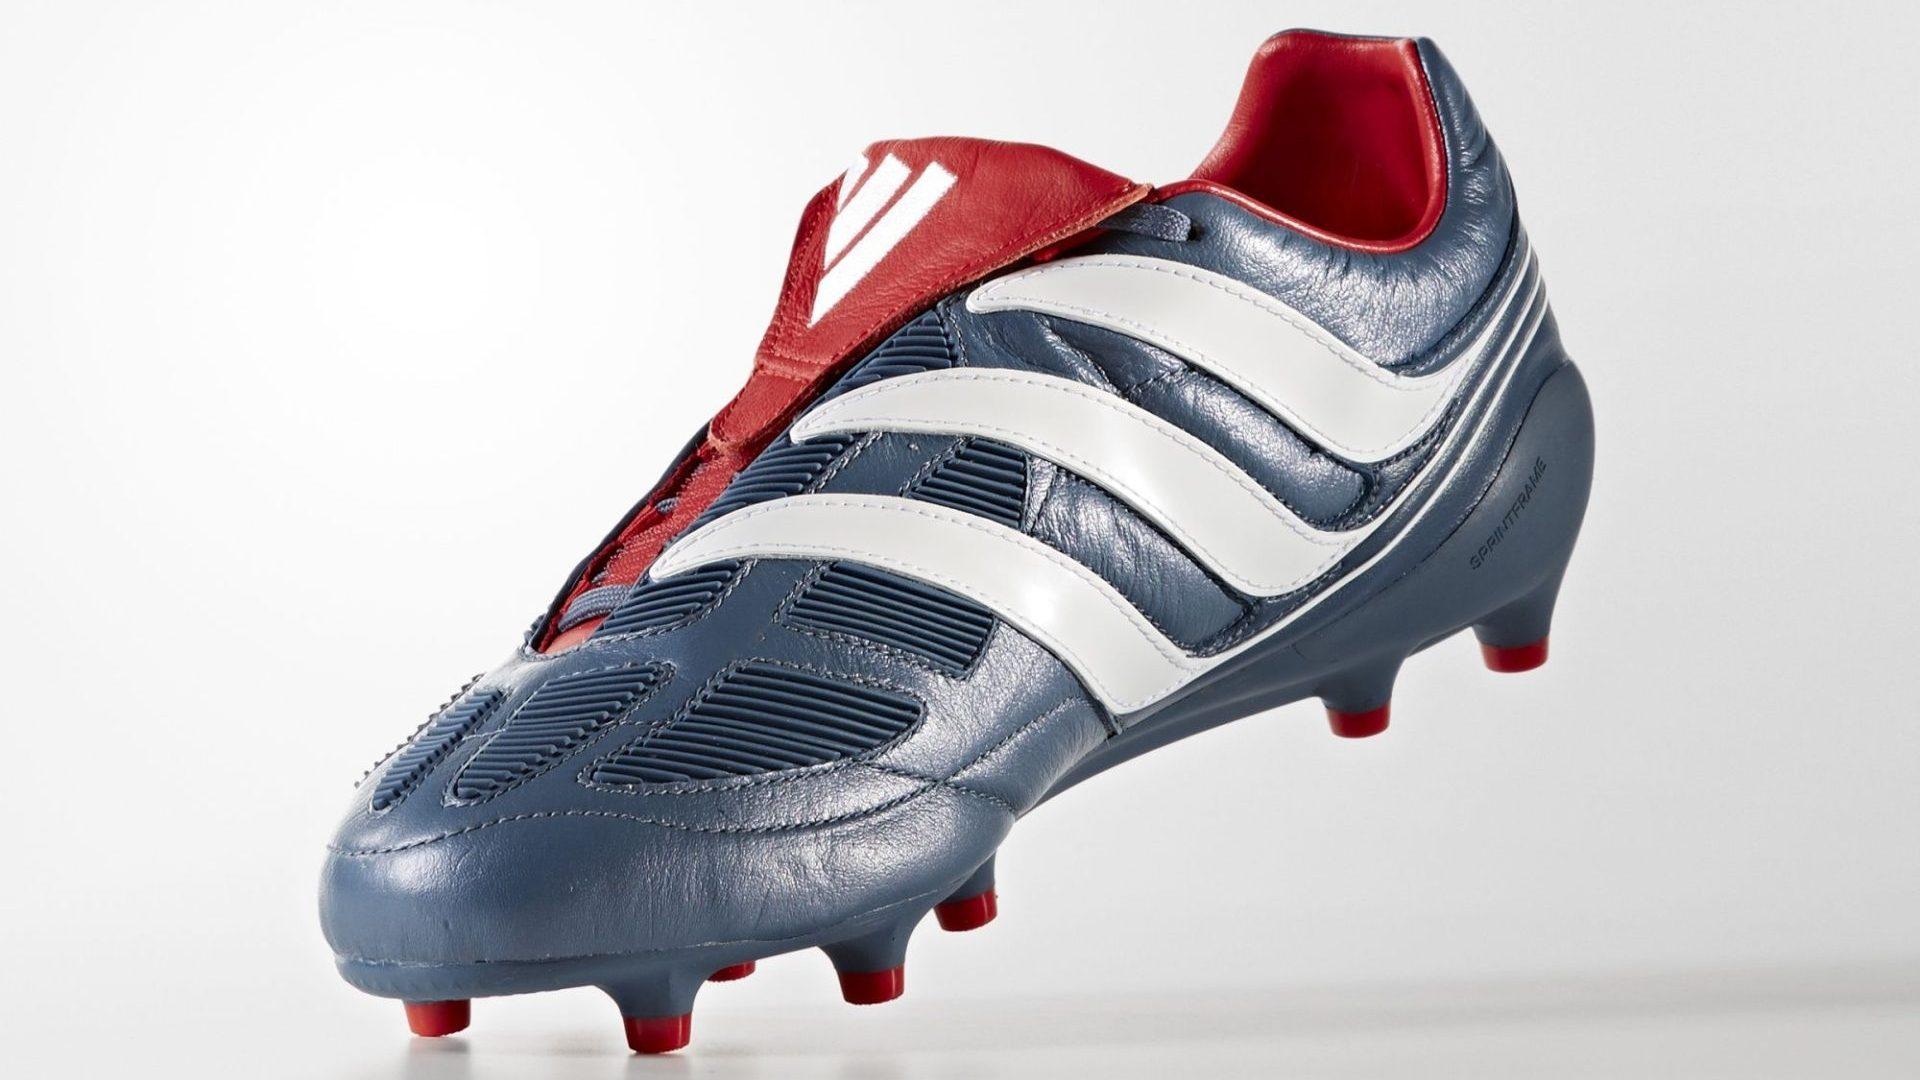 8a25bfb67 germany retro adidas predator football boots a367d b877d  hot built for  power the striking design of each predator model was in stark contrast to